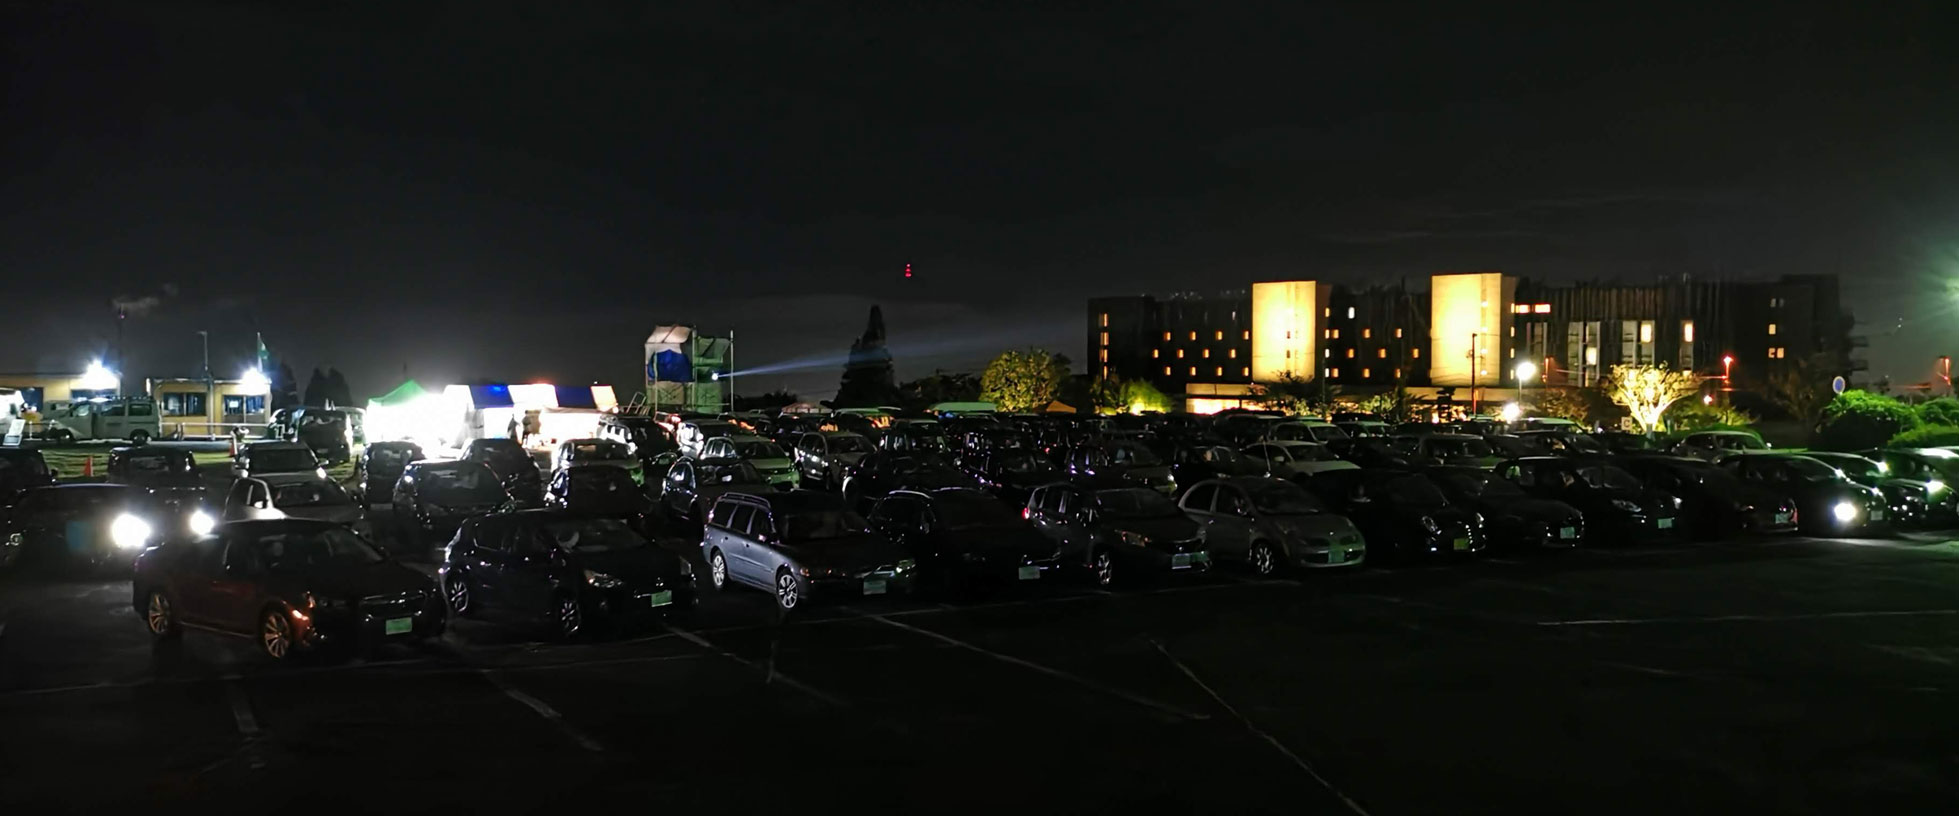 drive_in_theater_02